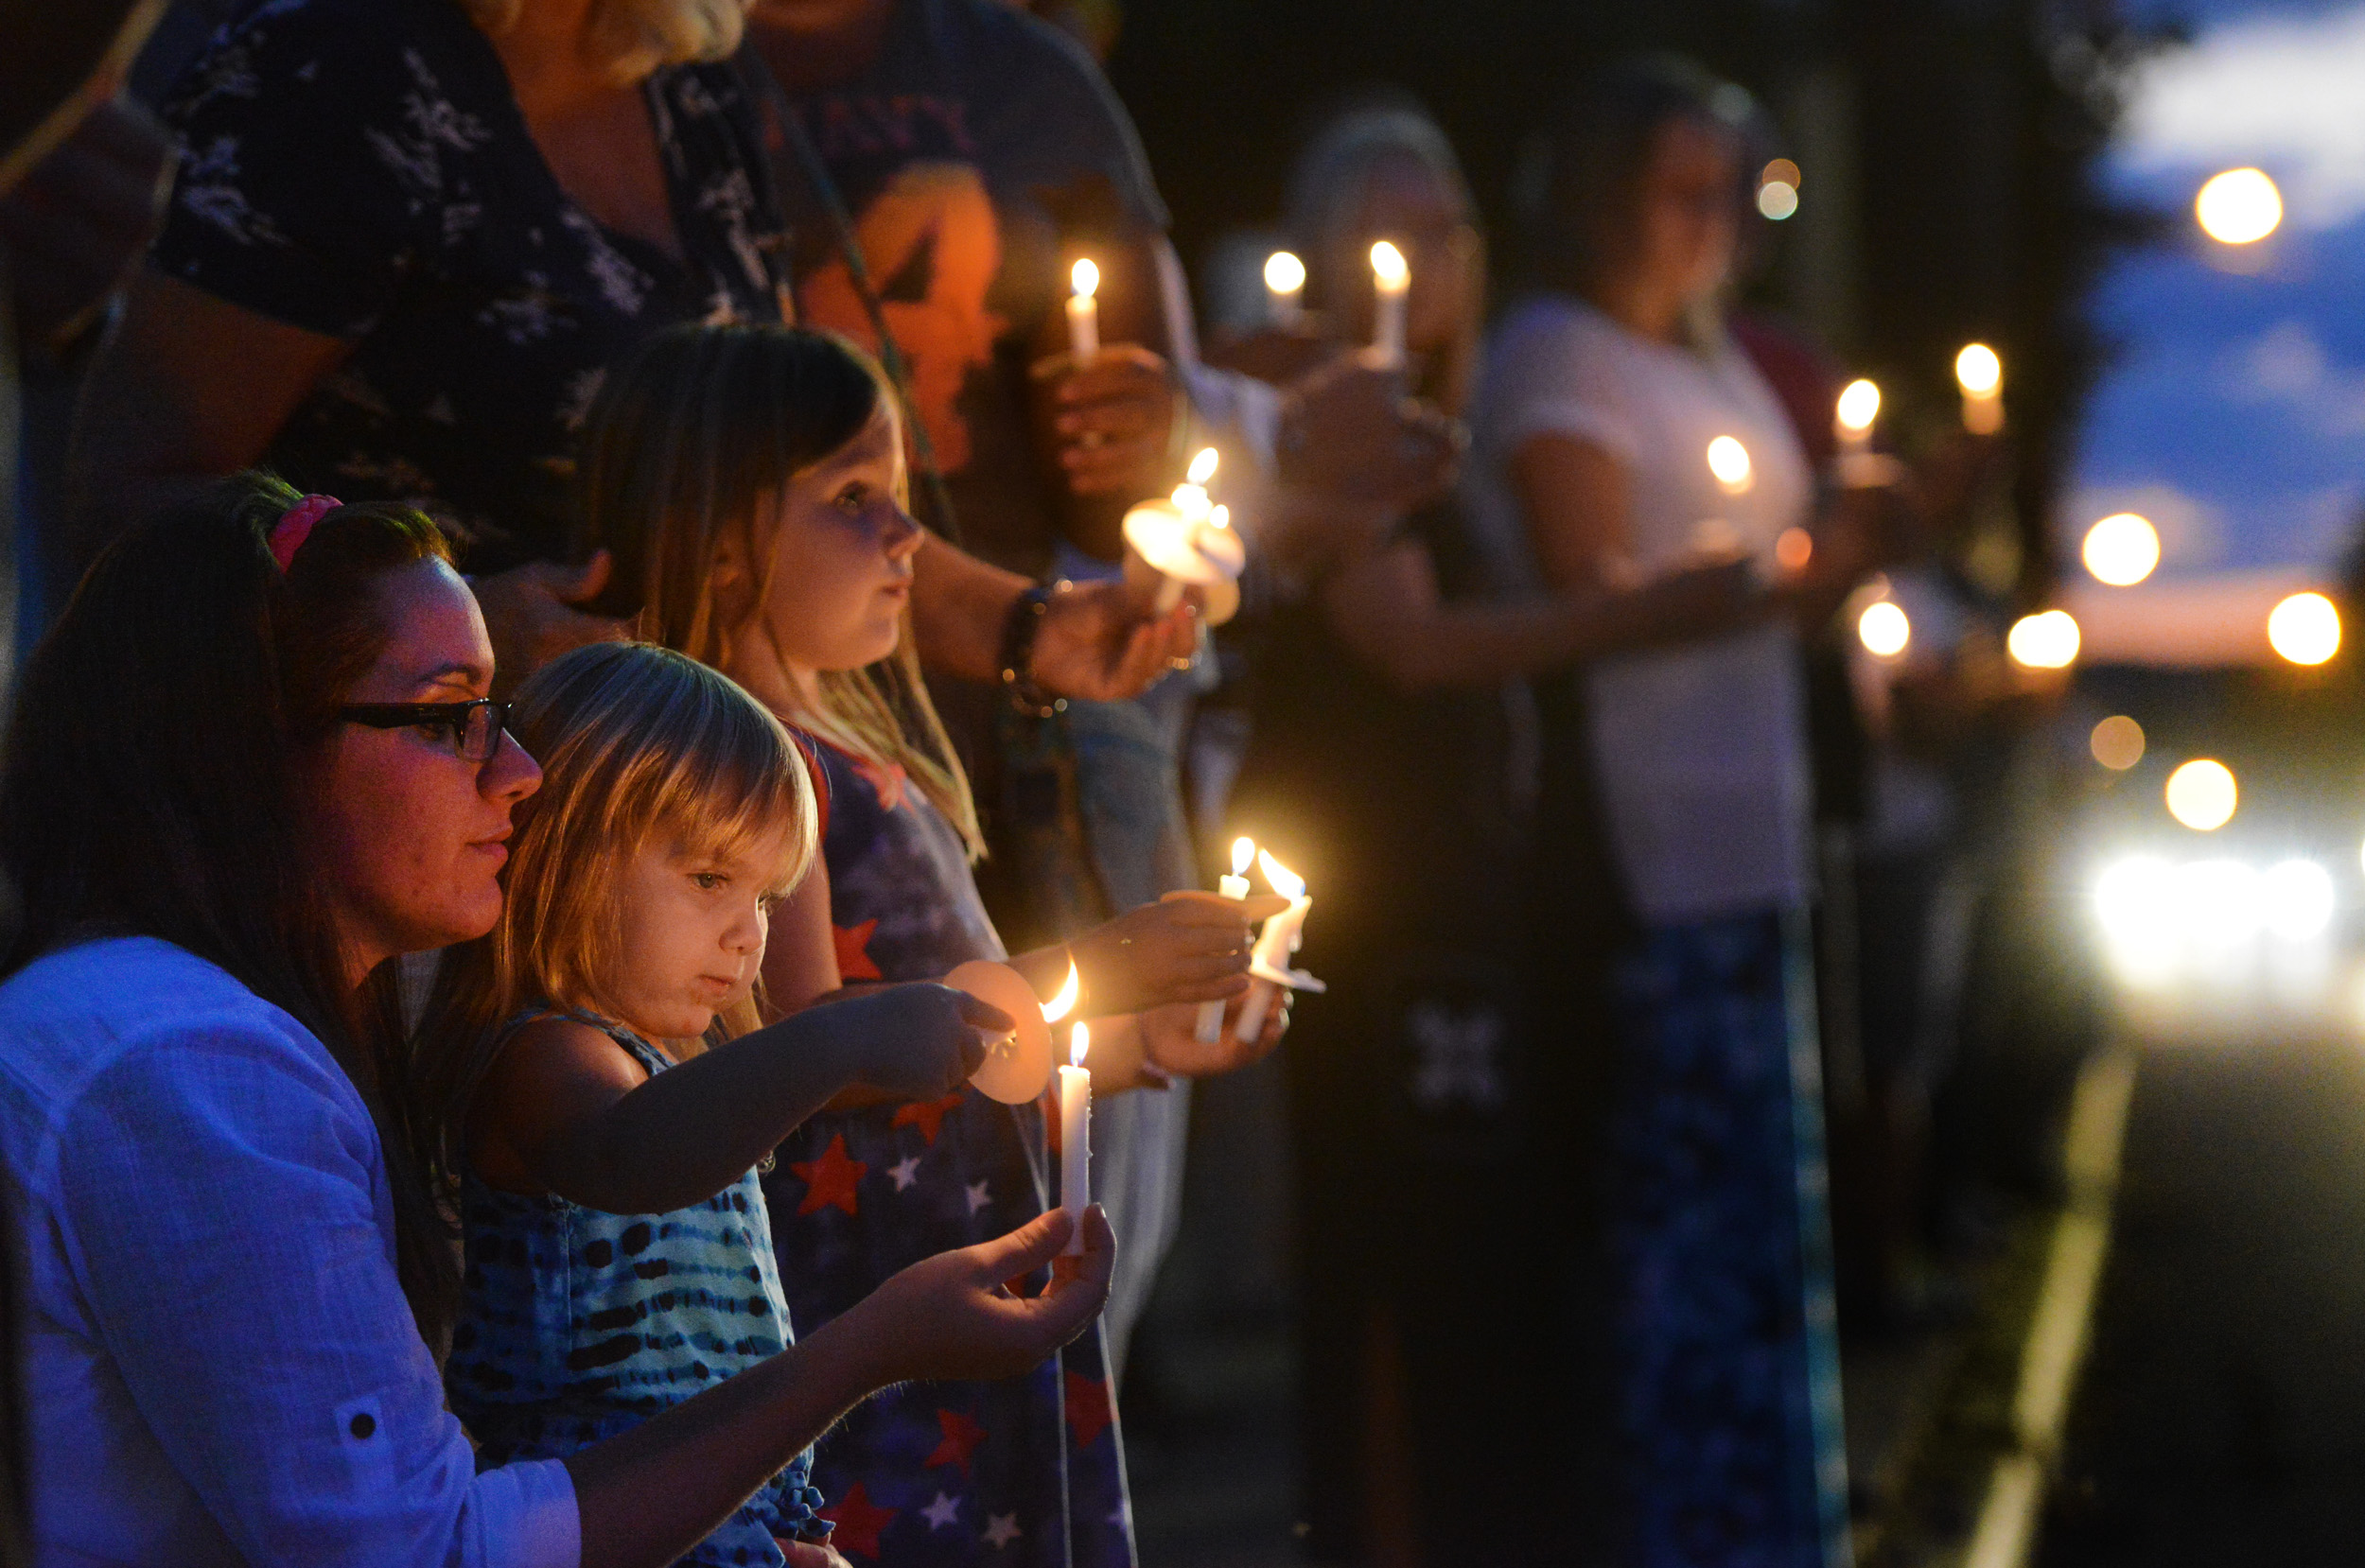 Gretchen Conklin, 2, of Springdale, keeps her flame lit with a candle belonging to her mother, Sarah Moorhead, as her sister Genevieve Conklin looks out towards Pittsburgh Street in Springdale during a candlelight vigil hosted by Springdale Helping Our Peers Everyday on Monday, Aug. 24, 2015.